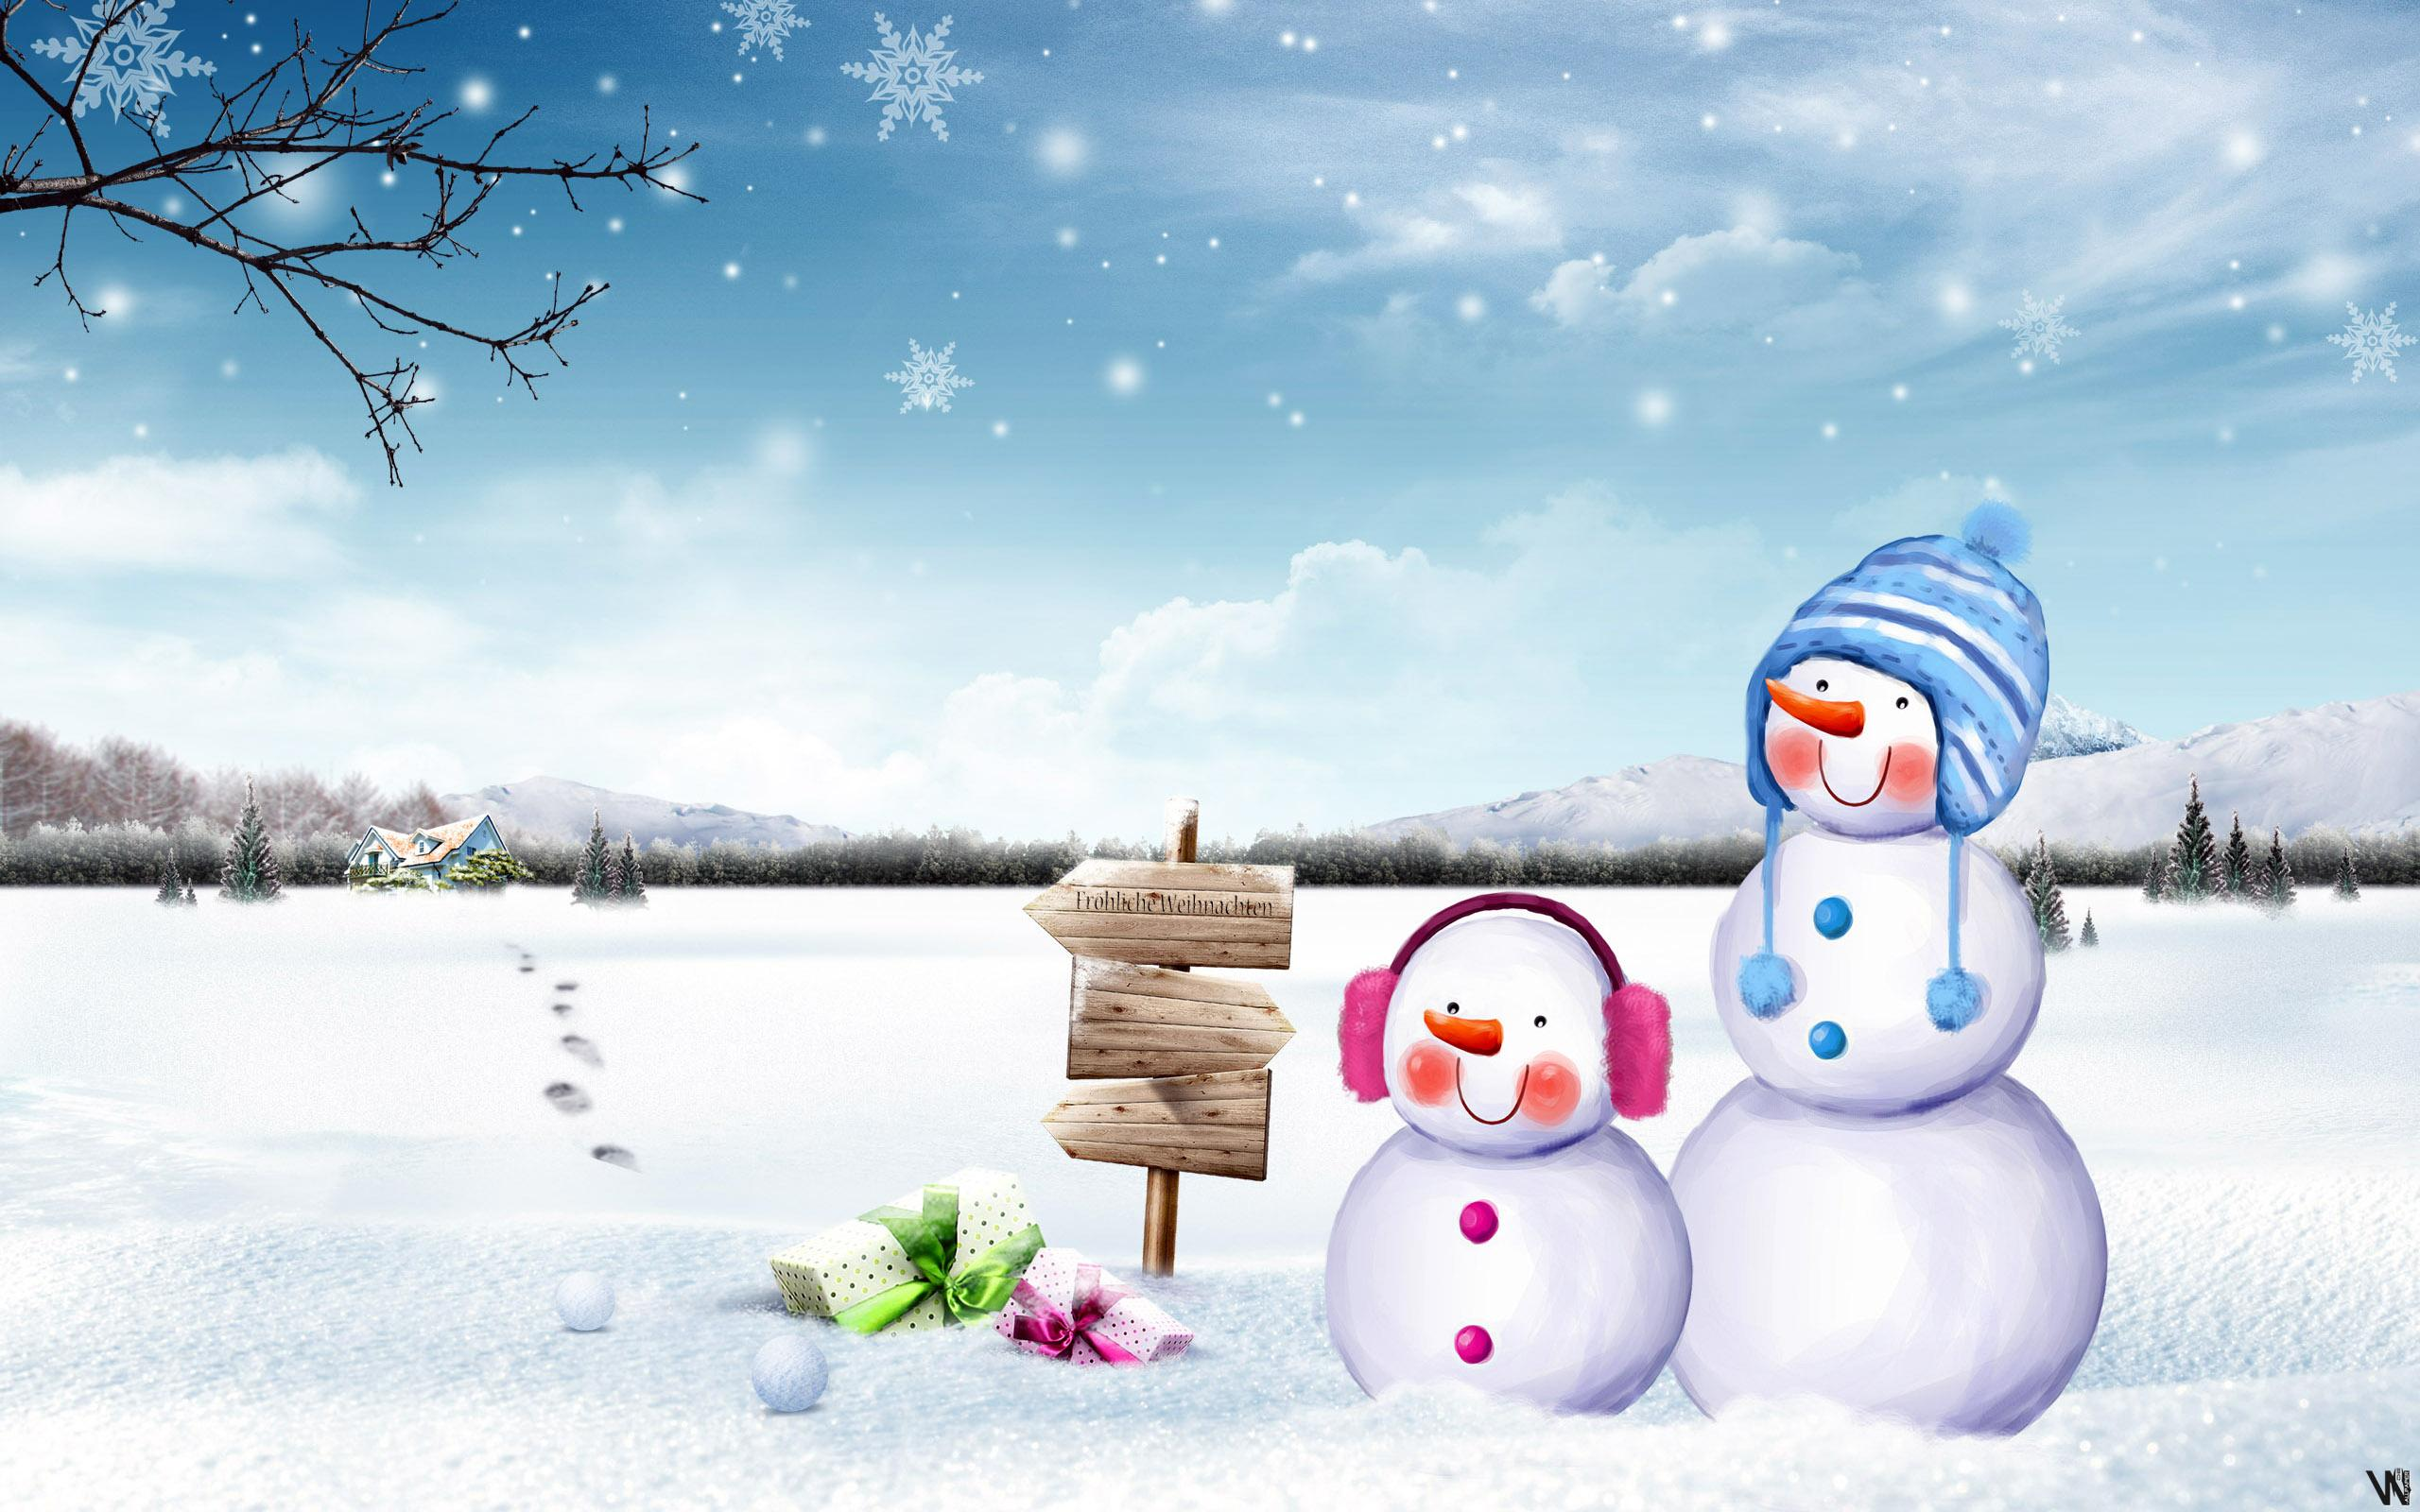 65 Frosty the Snowman Wallpapers   Download at WallpaperBro 2560x1600